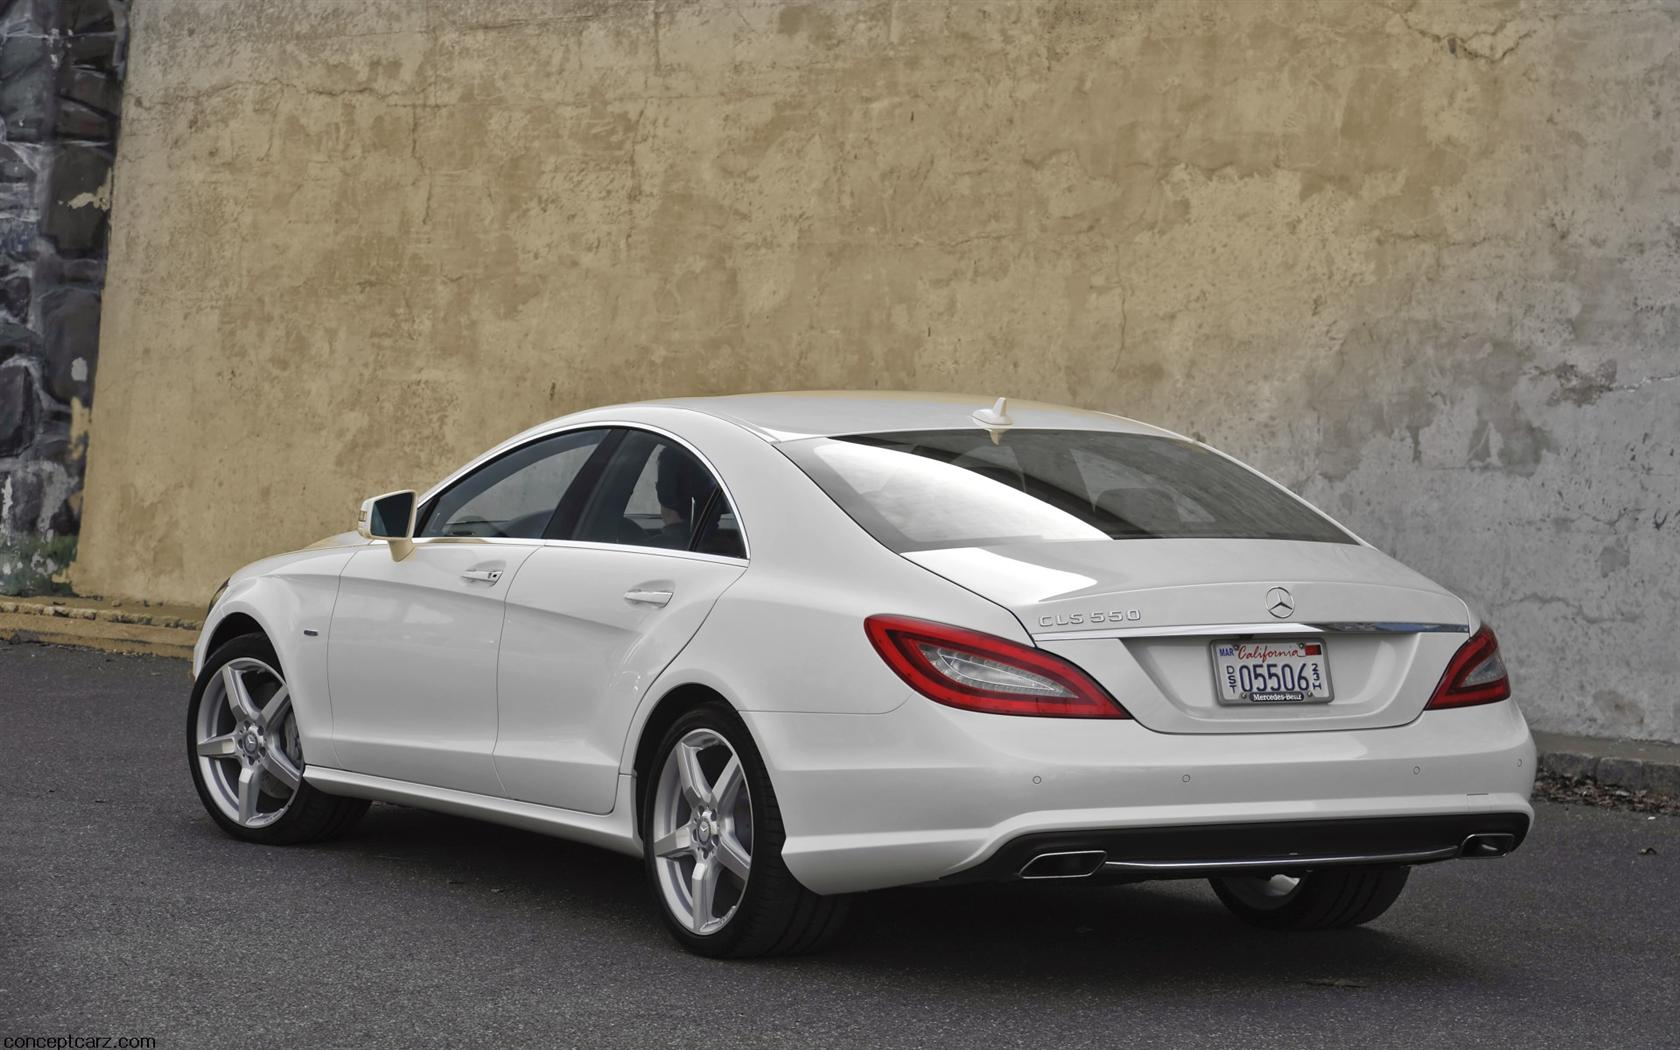 2012 mercedes benz cls class images photo mercedes cls550 for Mercedes benz cls 2012 price